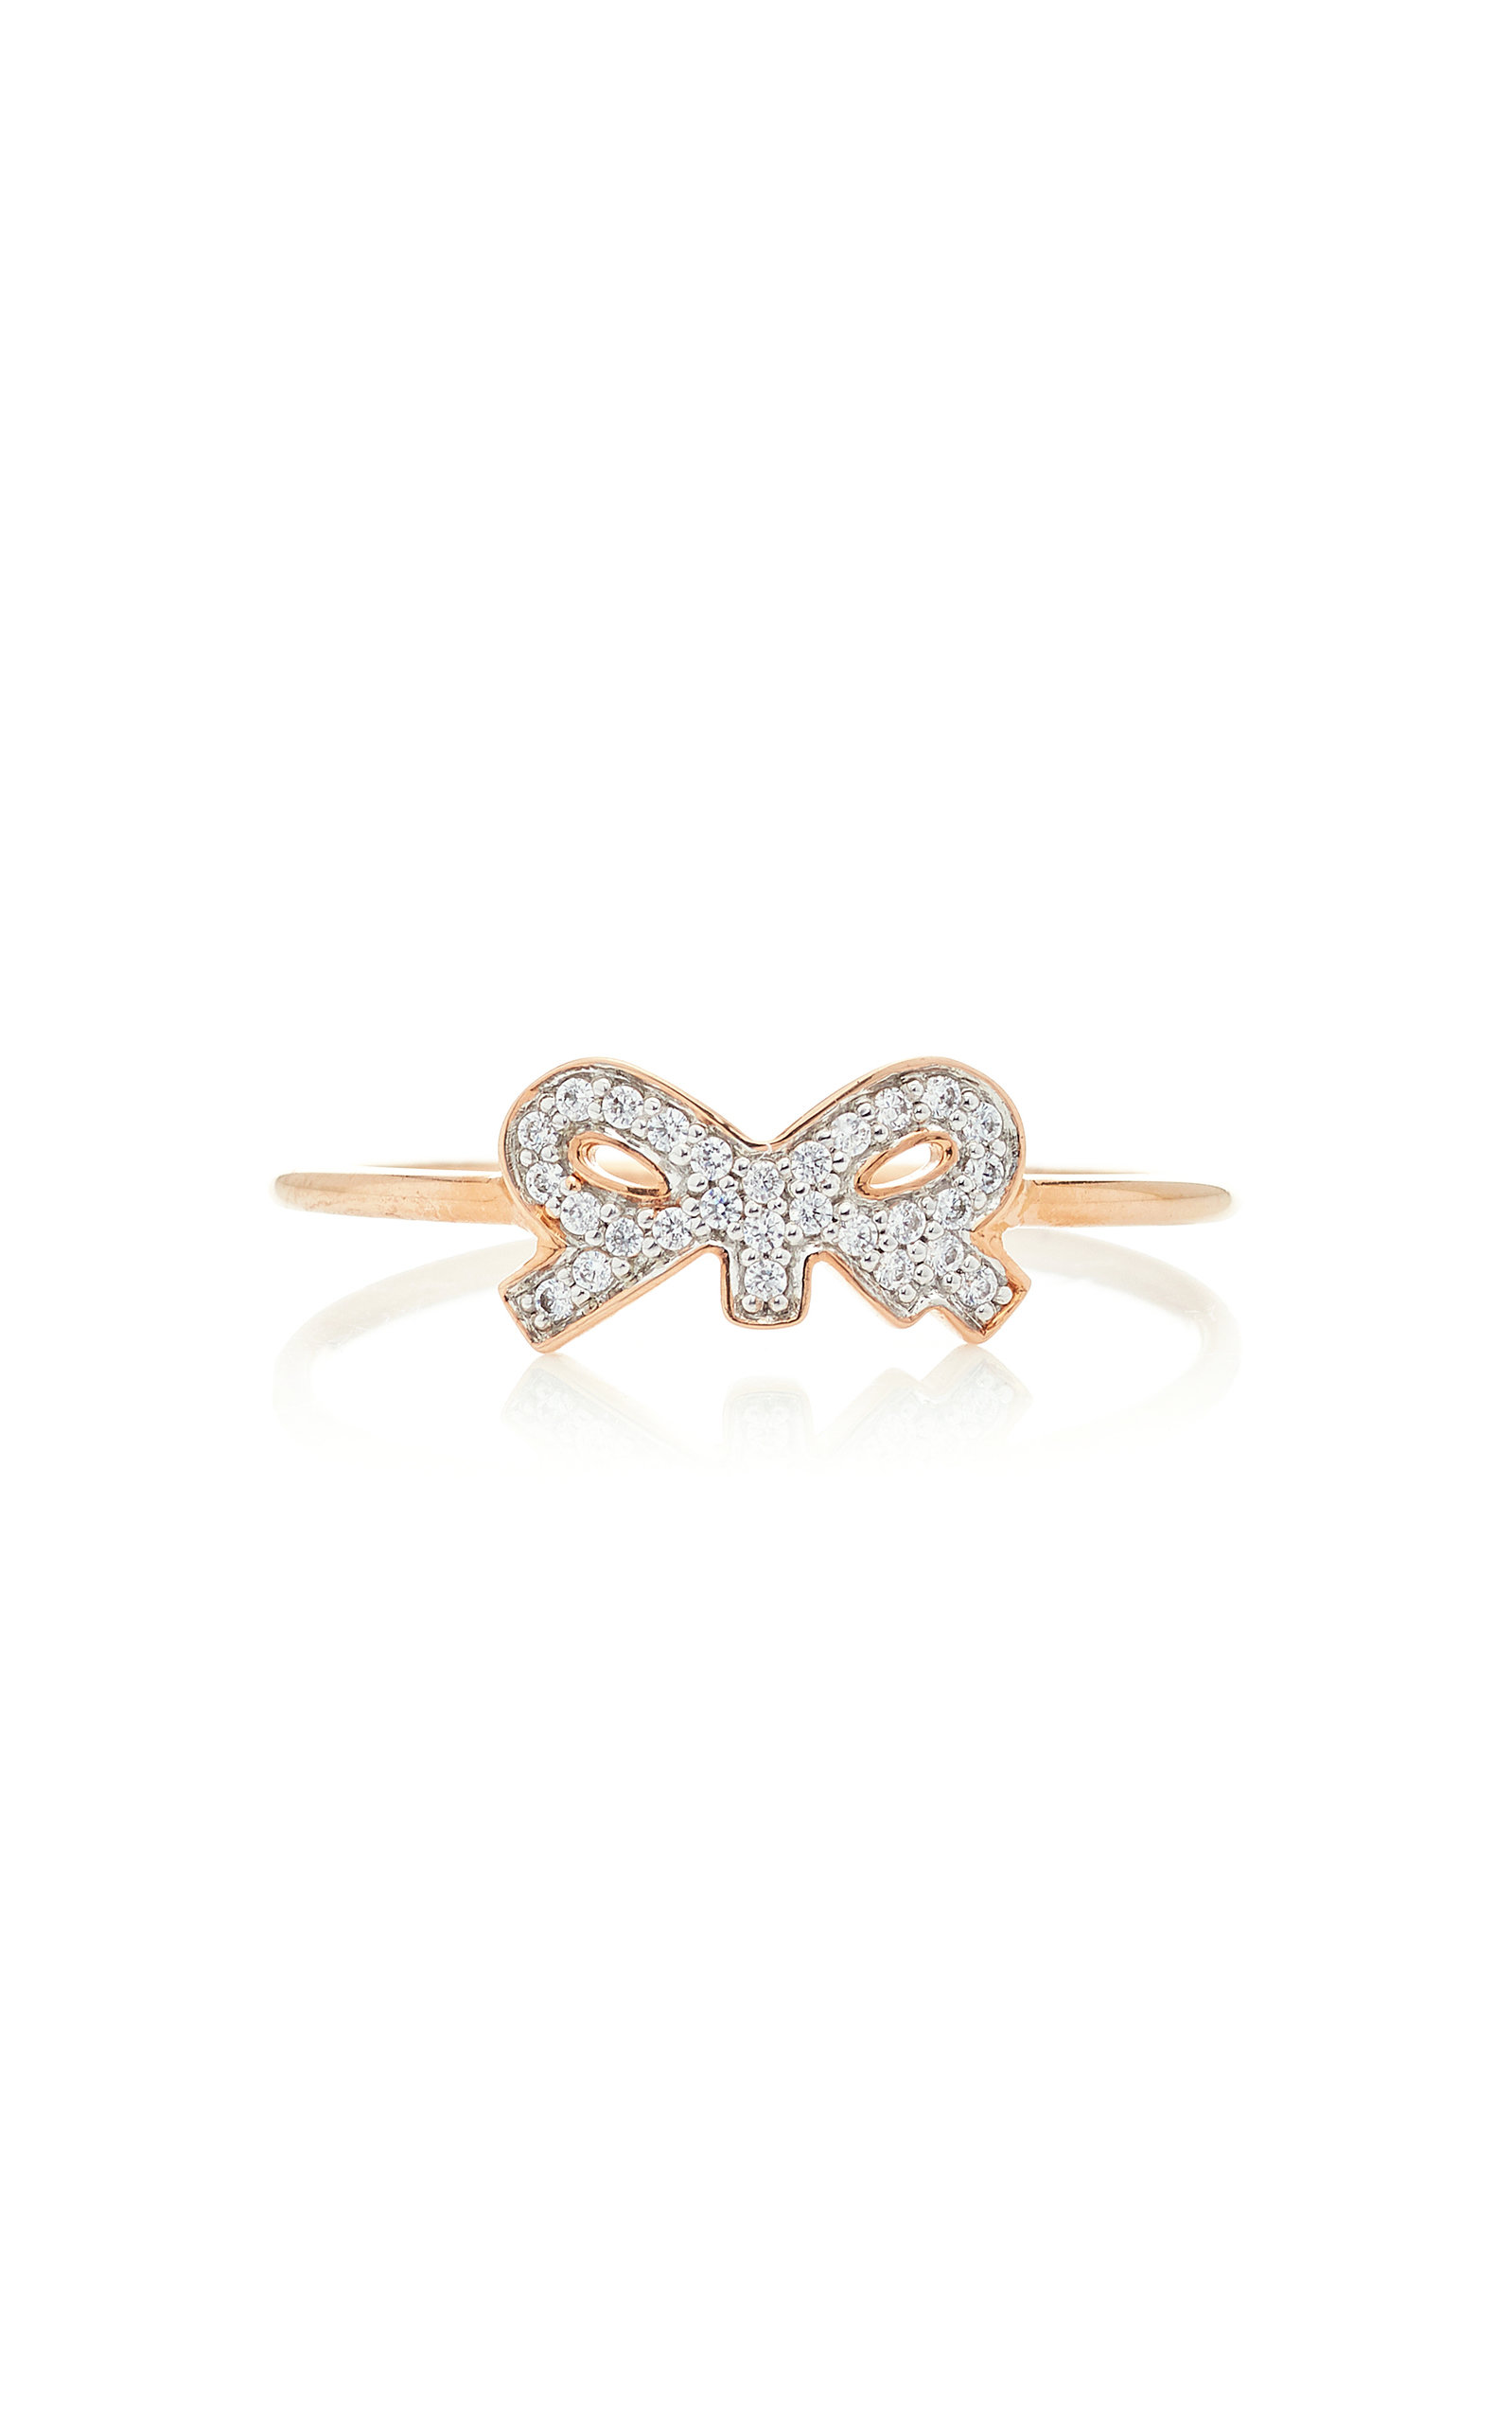 GINETTE NY Tiny Diamond 18K Rose Gold Ring in Pink